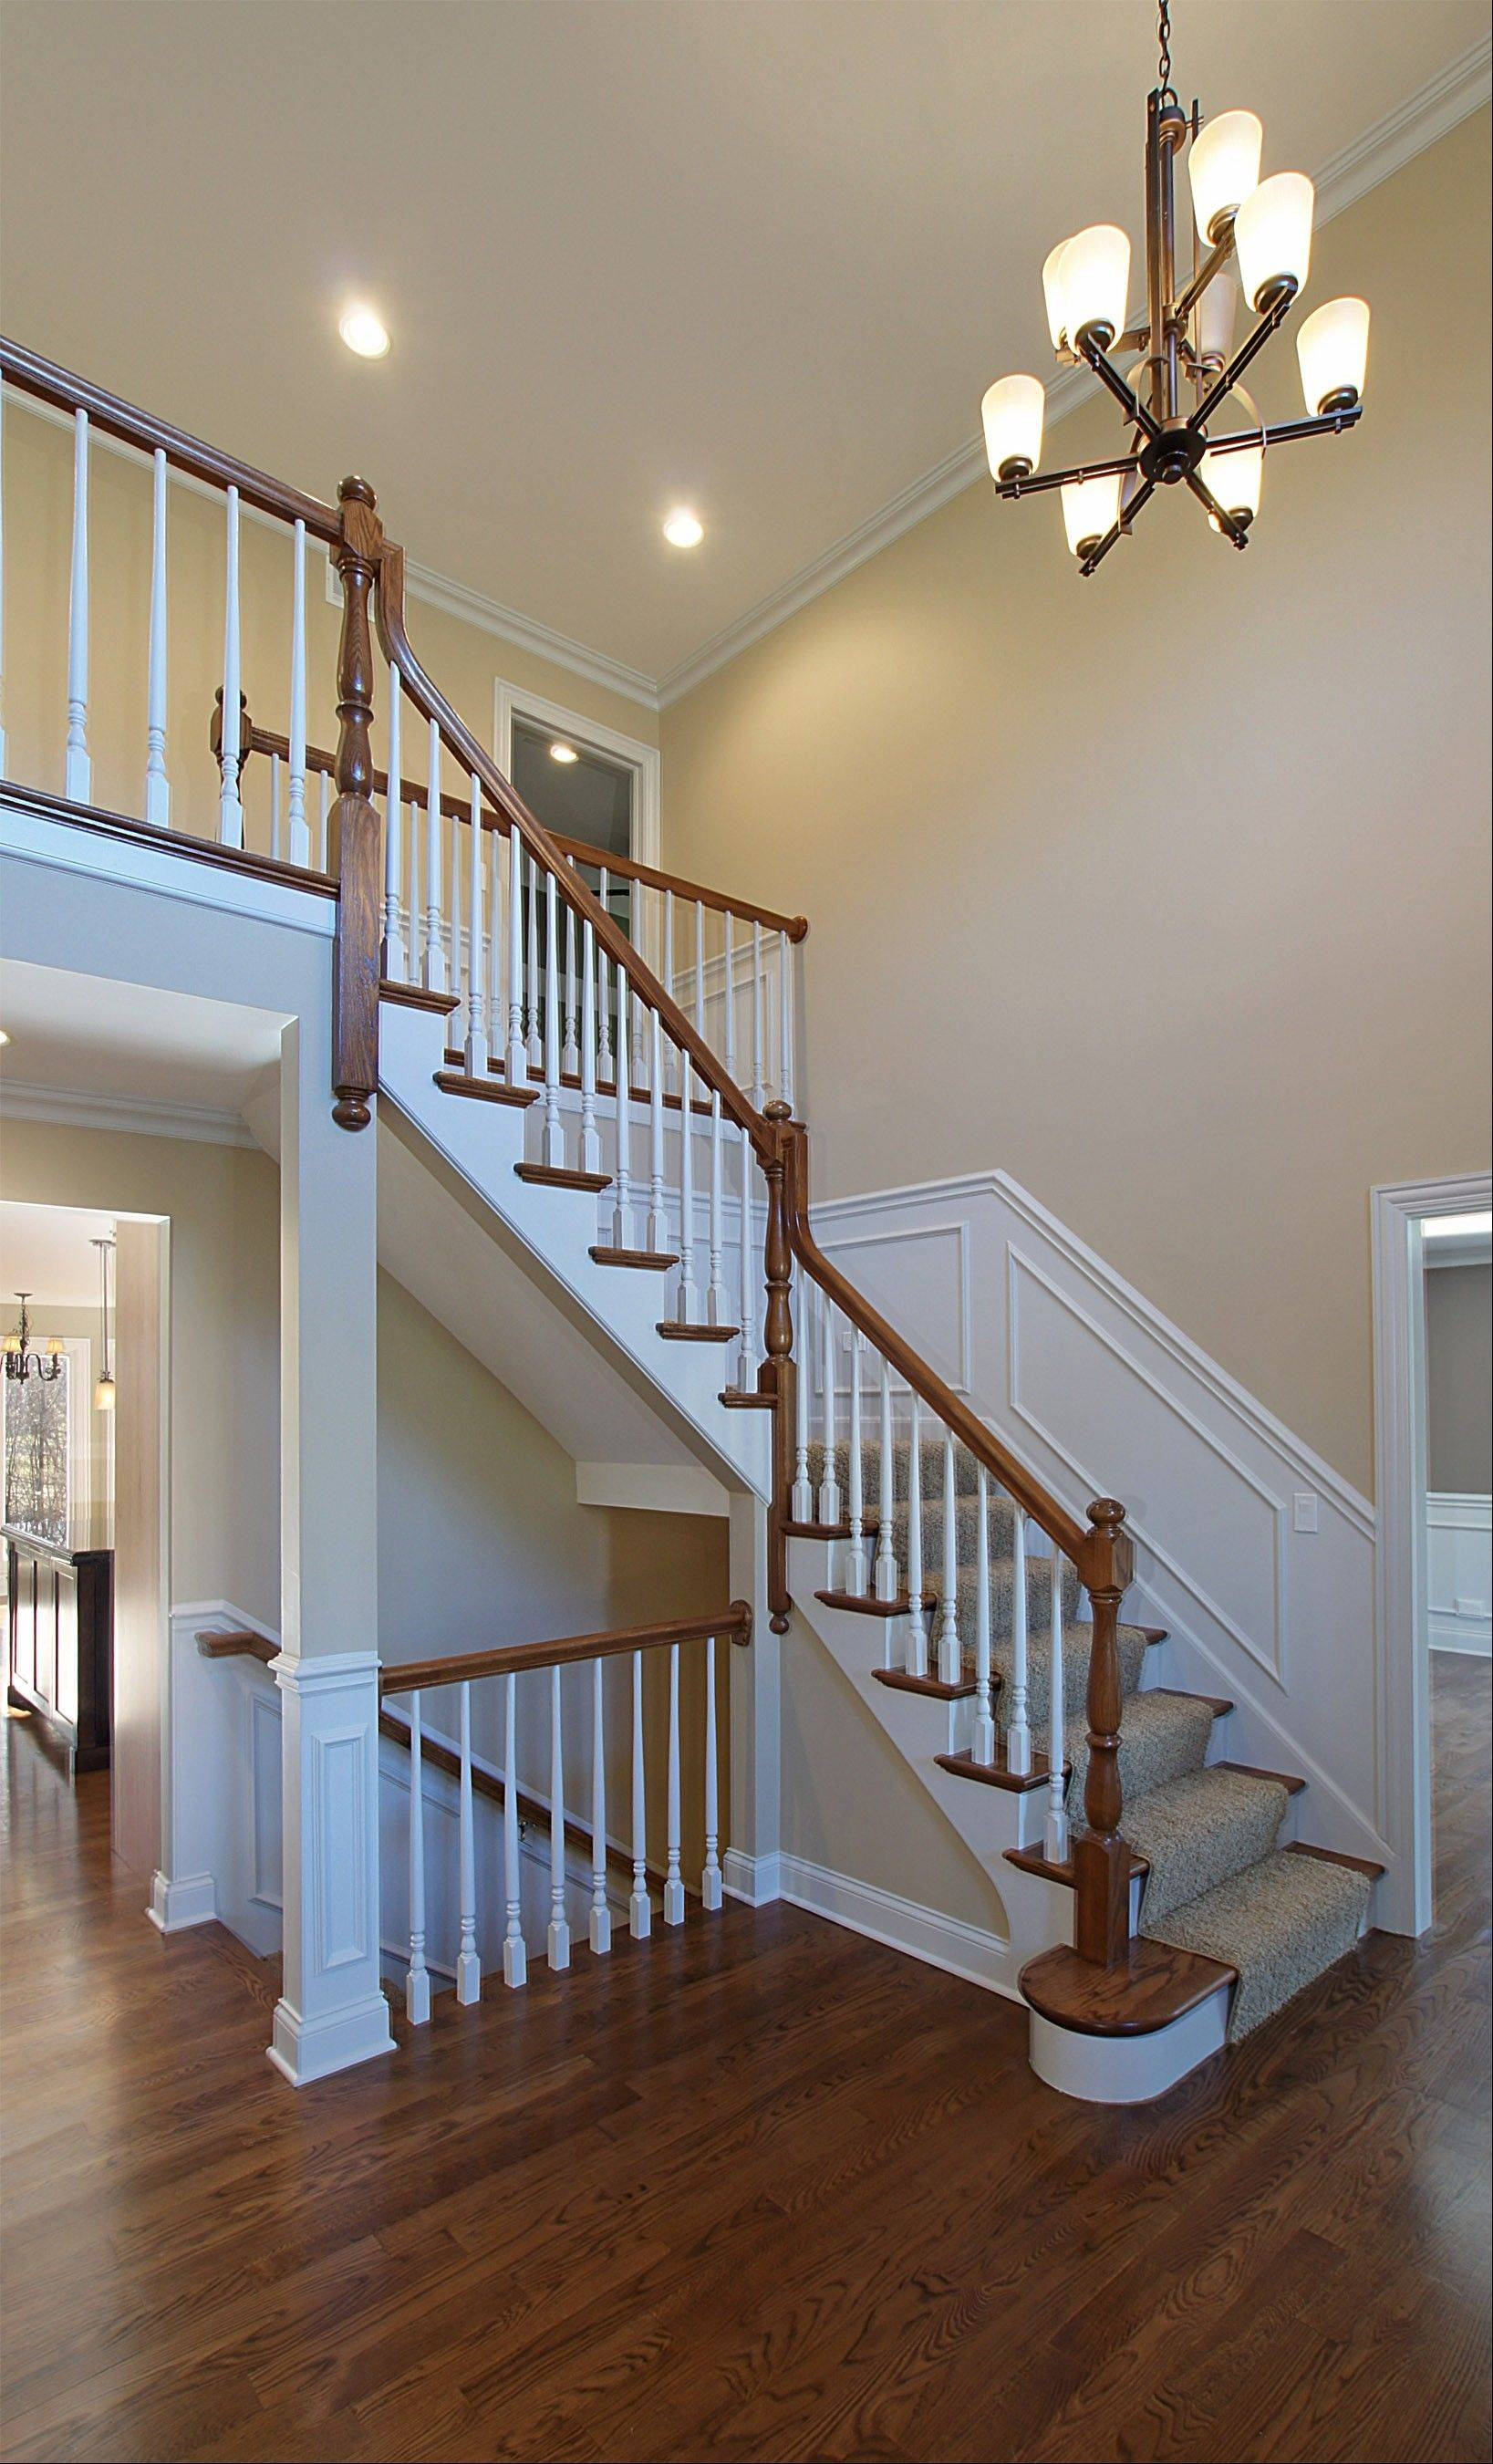 A staircase and two-story foyer welcome guests to the home.